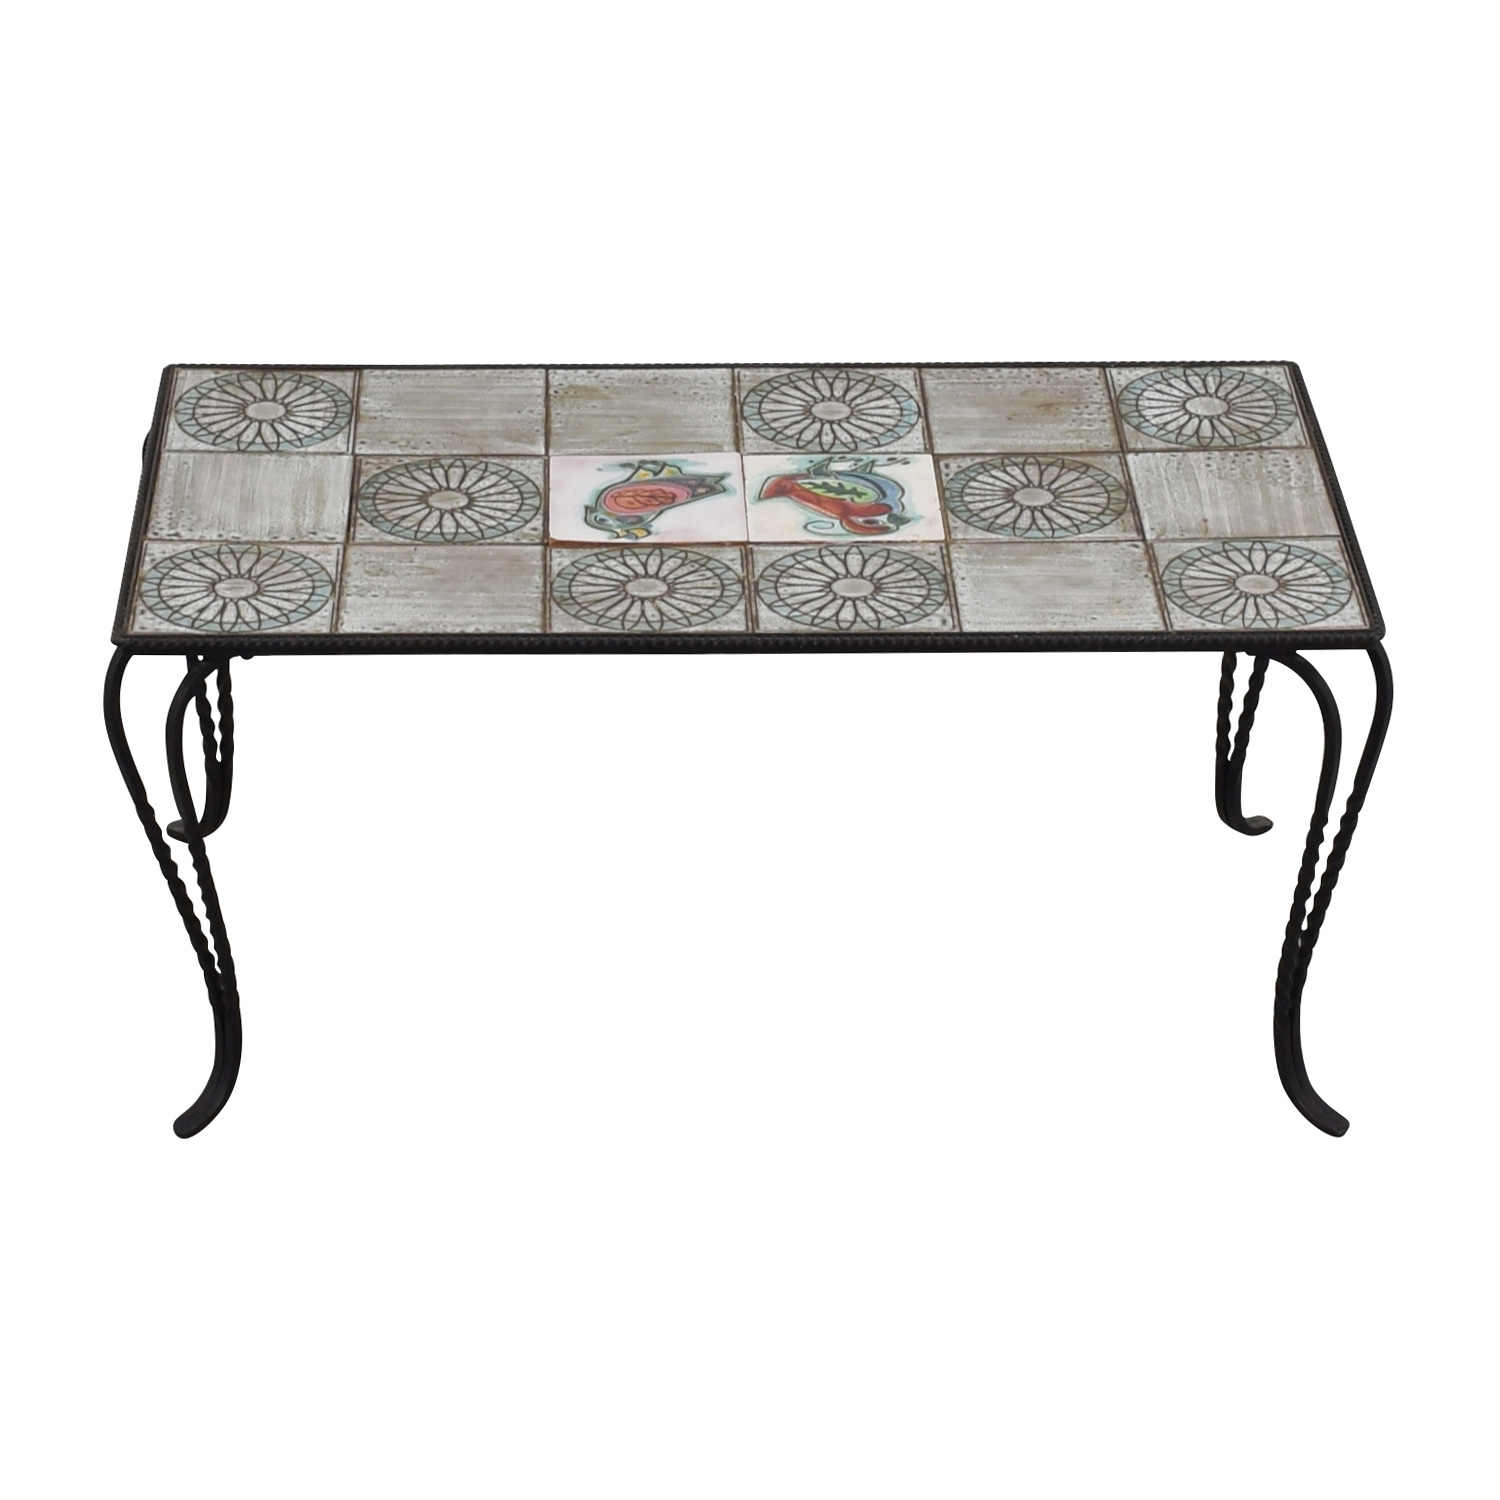 Wrought Iron Tile Table / Coffee Tables